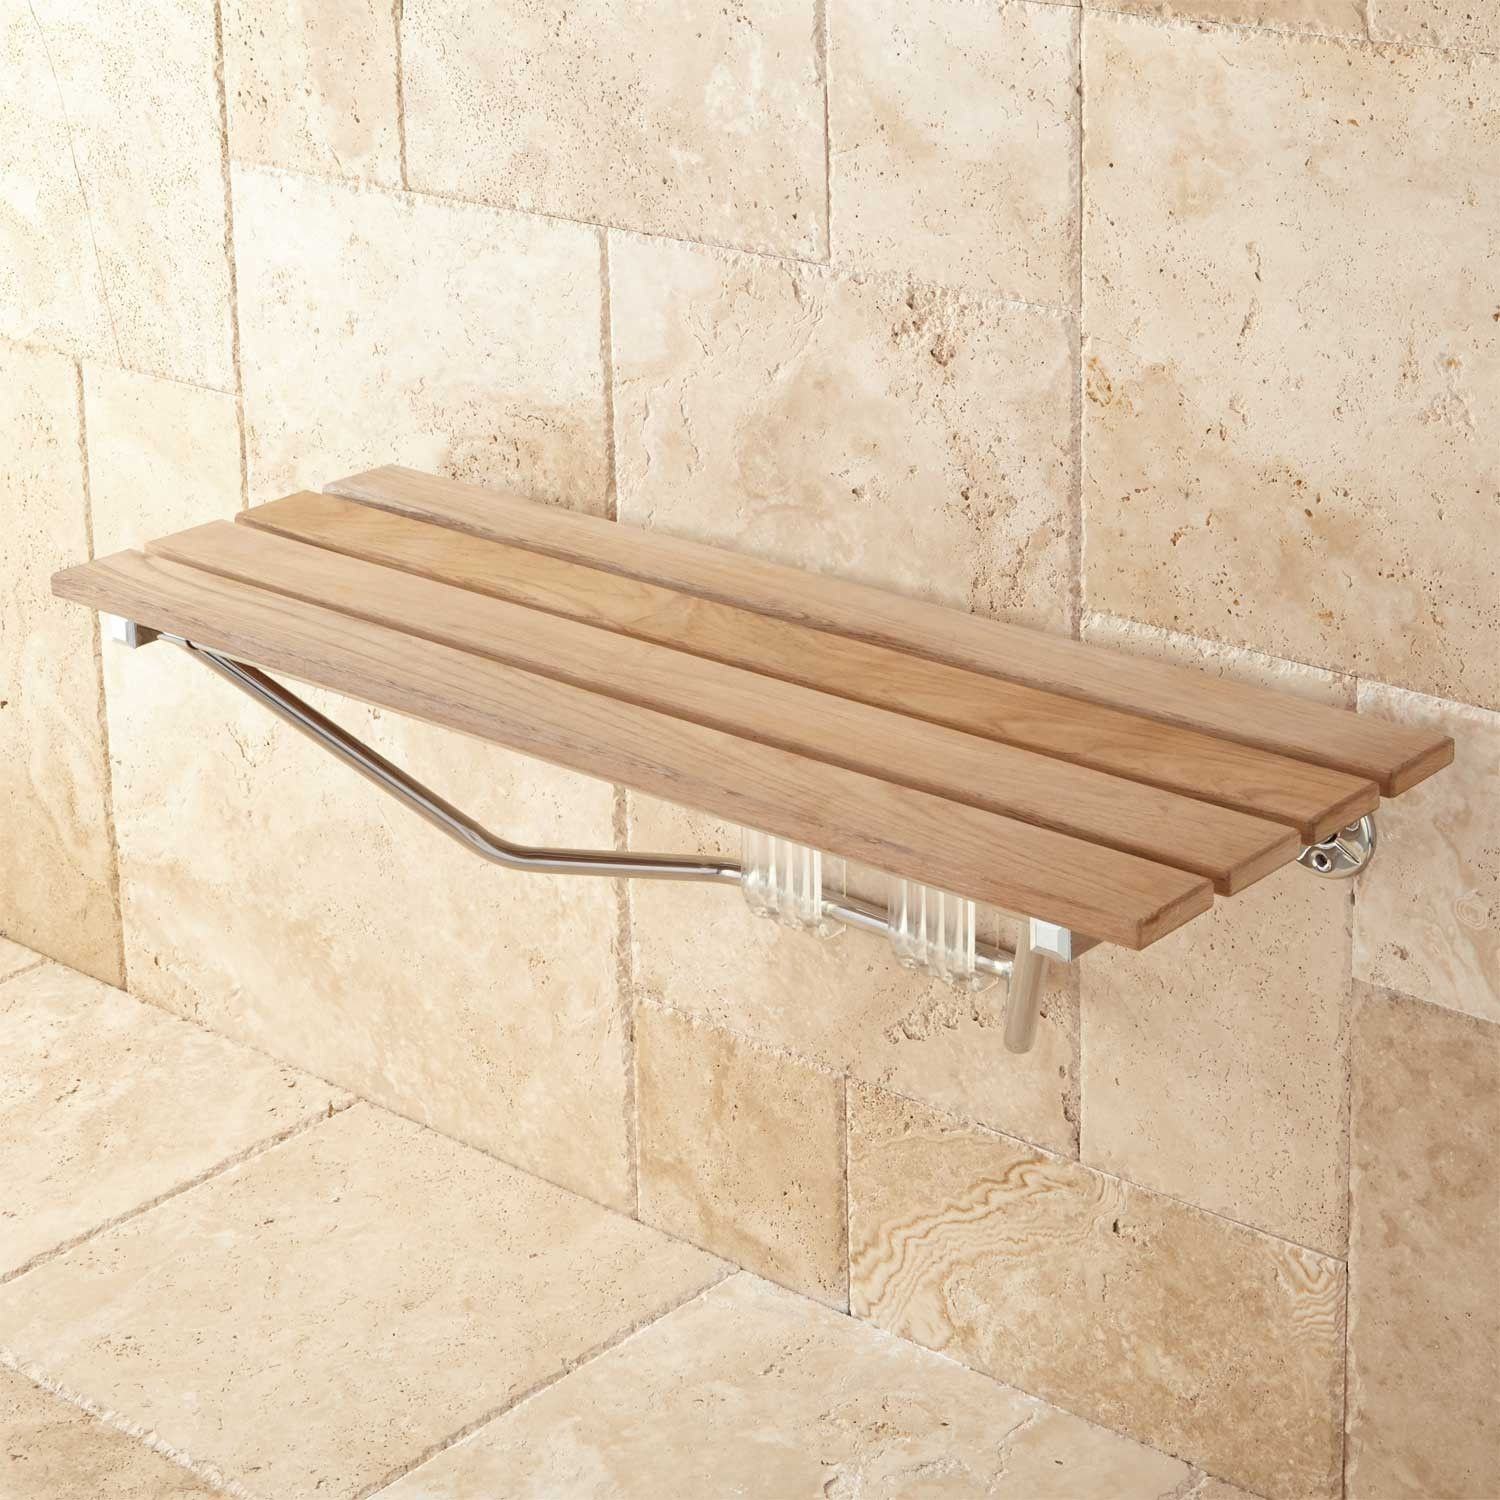 Bathrooms Signature Hardware 36 Folding Teak Shower Seat Safe And Comfortable This Shower Seat That Ea Teak Shower Teak Shower Bench Teak Shower Seat